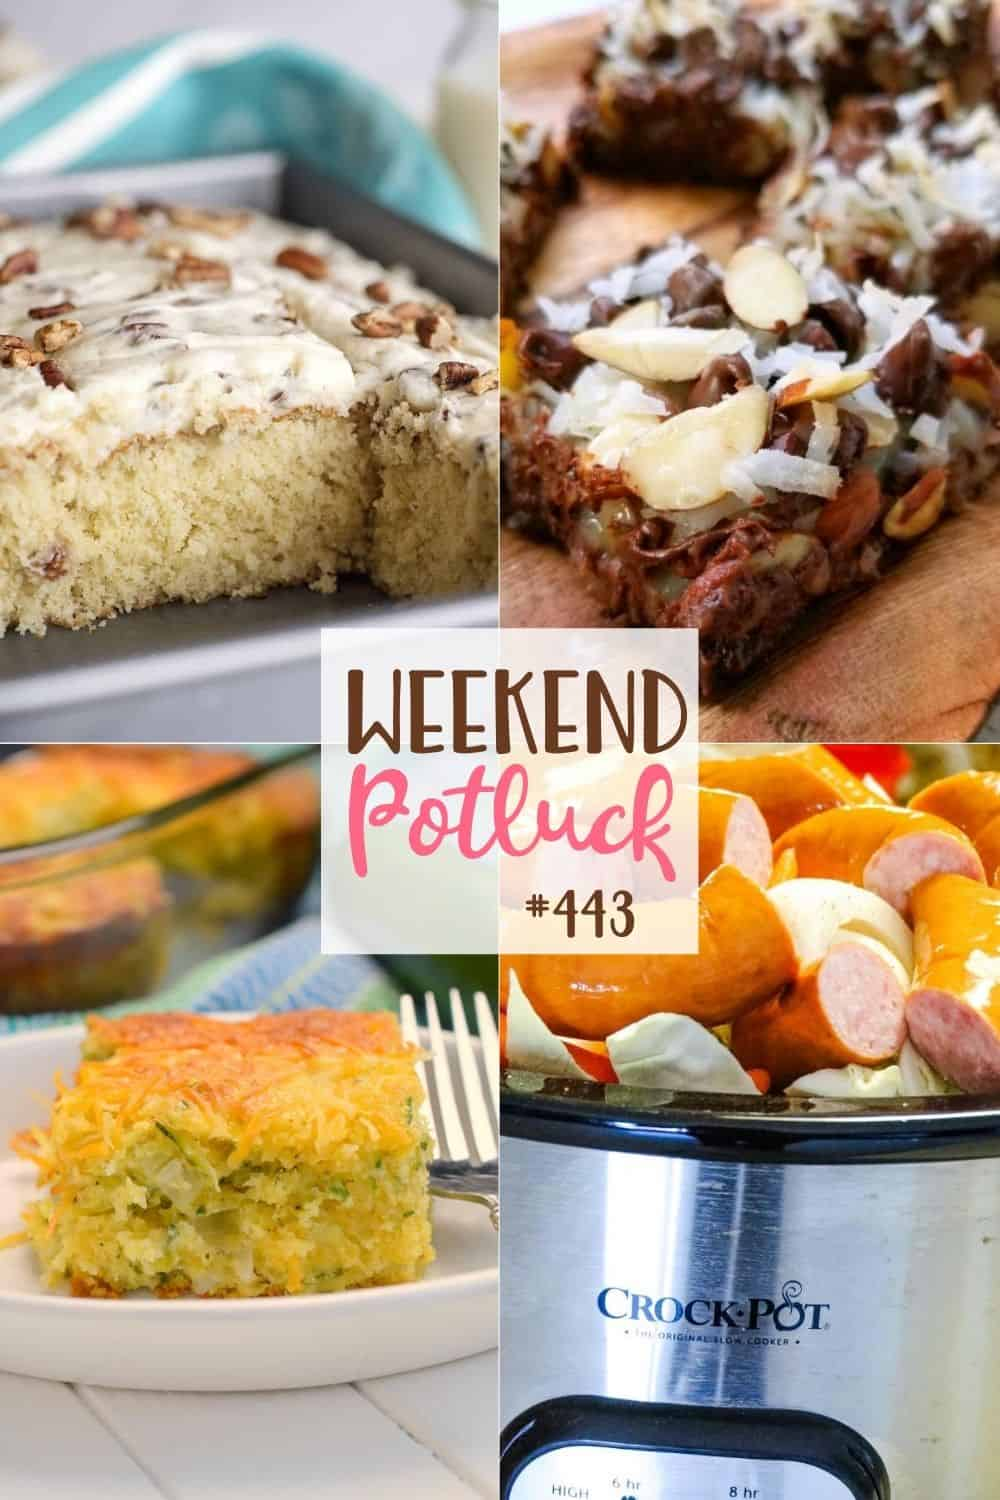 Weekend Potluck featured recipes: Italian Cream Cake, Cheesy Zucchini Cornbread Casserole, Crock Pot Smoked Sausage, Cabbage and Potatoes and Almond Joy Magic Cookie Bars